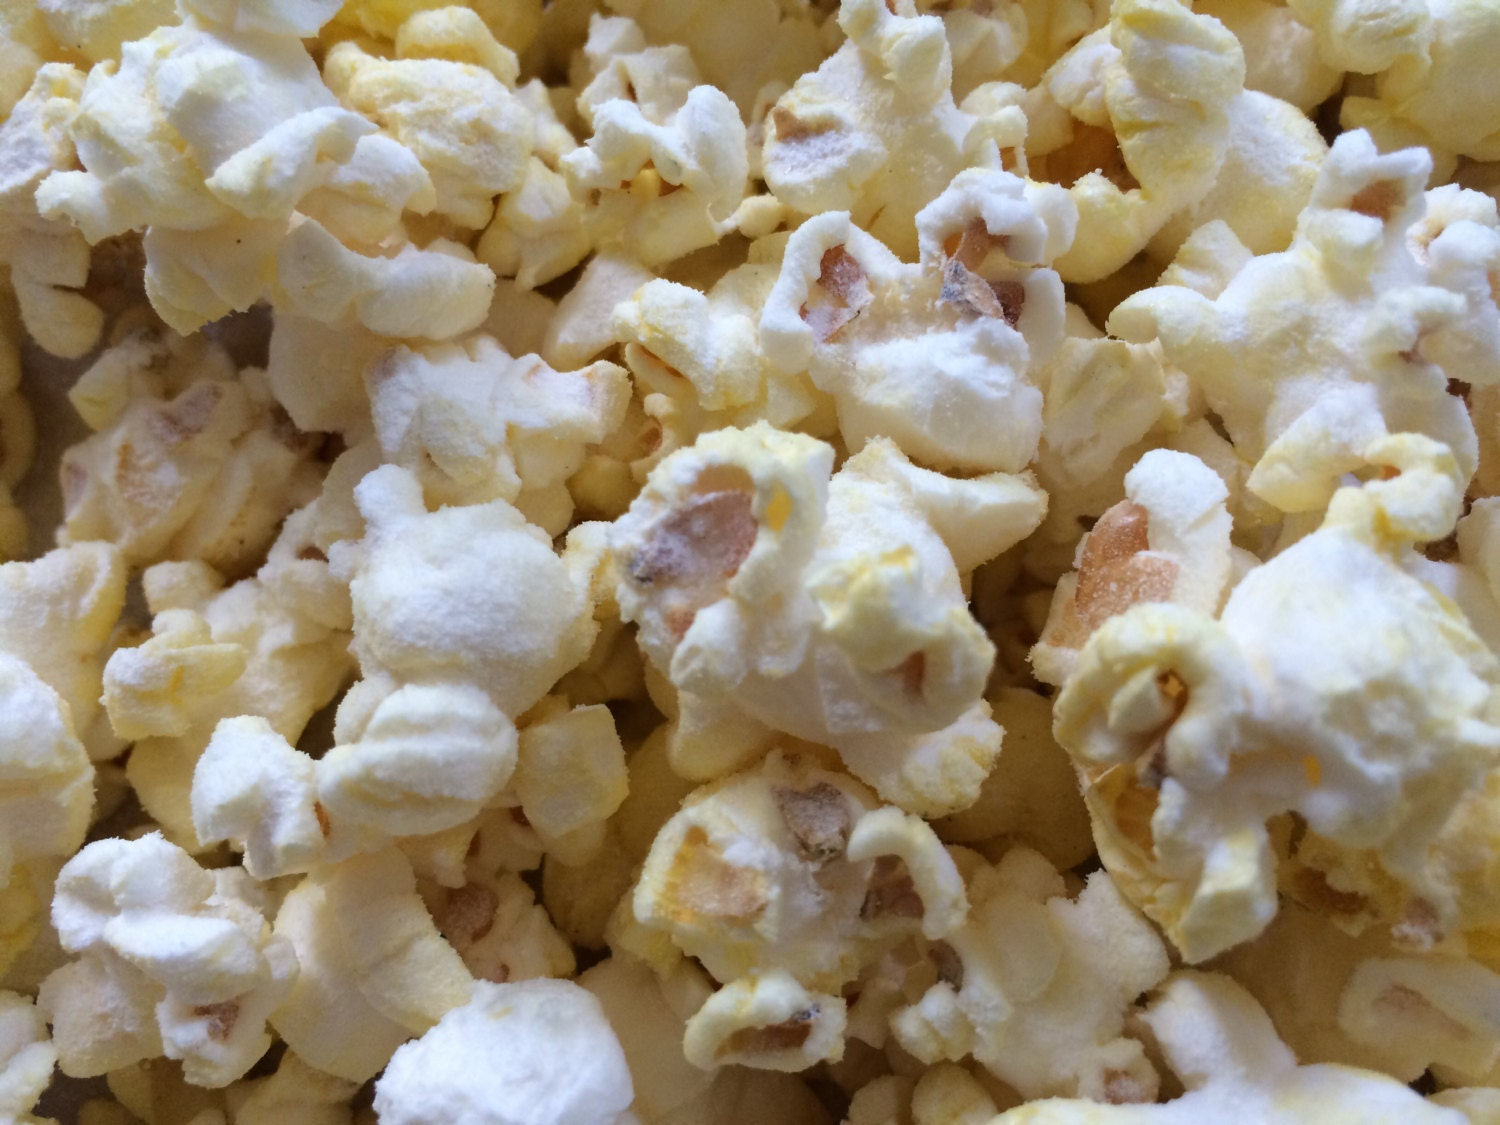 Popcorn Perfection in Every Bite. Orville is passionate about popcorn — right down to every kernel. Whether it's our many microwave varieties or traditional kernel corn, we've been proud to share the wholesome goodness with you and your family for more than 40 years!